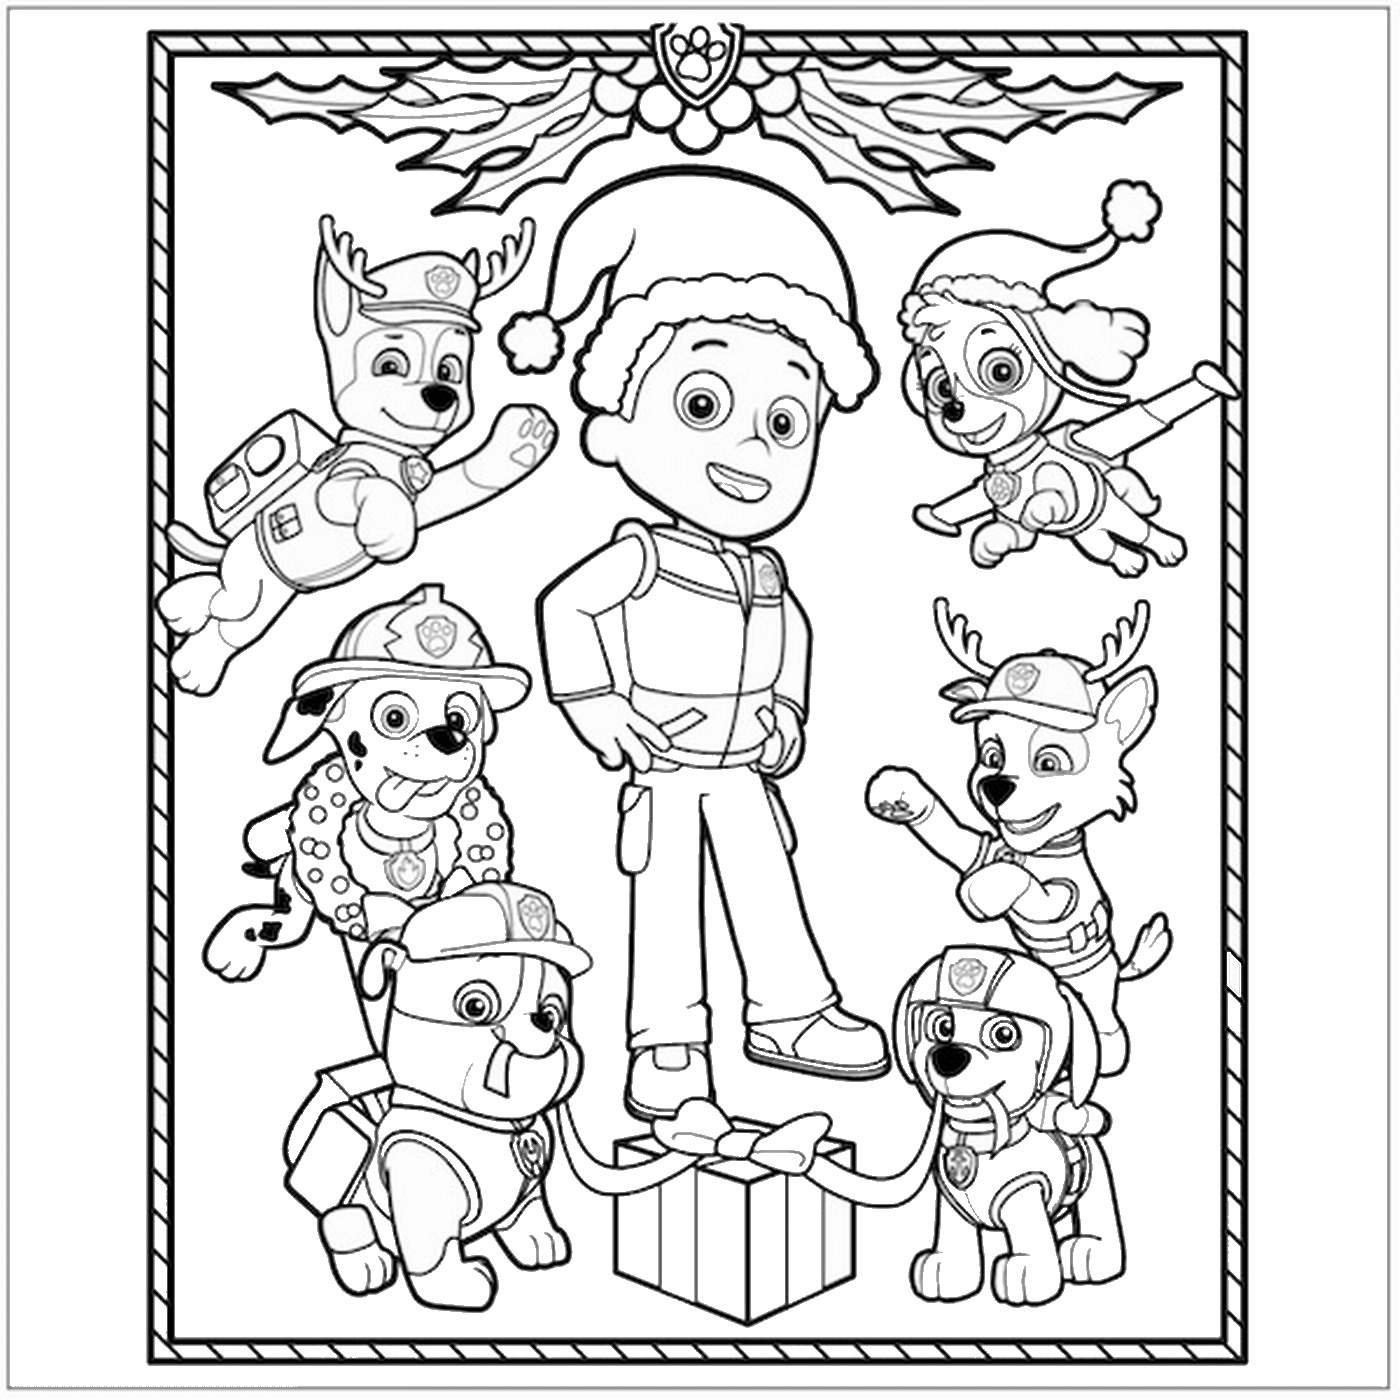 Paw patrol coloring pages robo dog - Paw Patrol Flying Patrols Coloring Pages